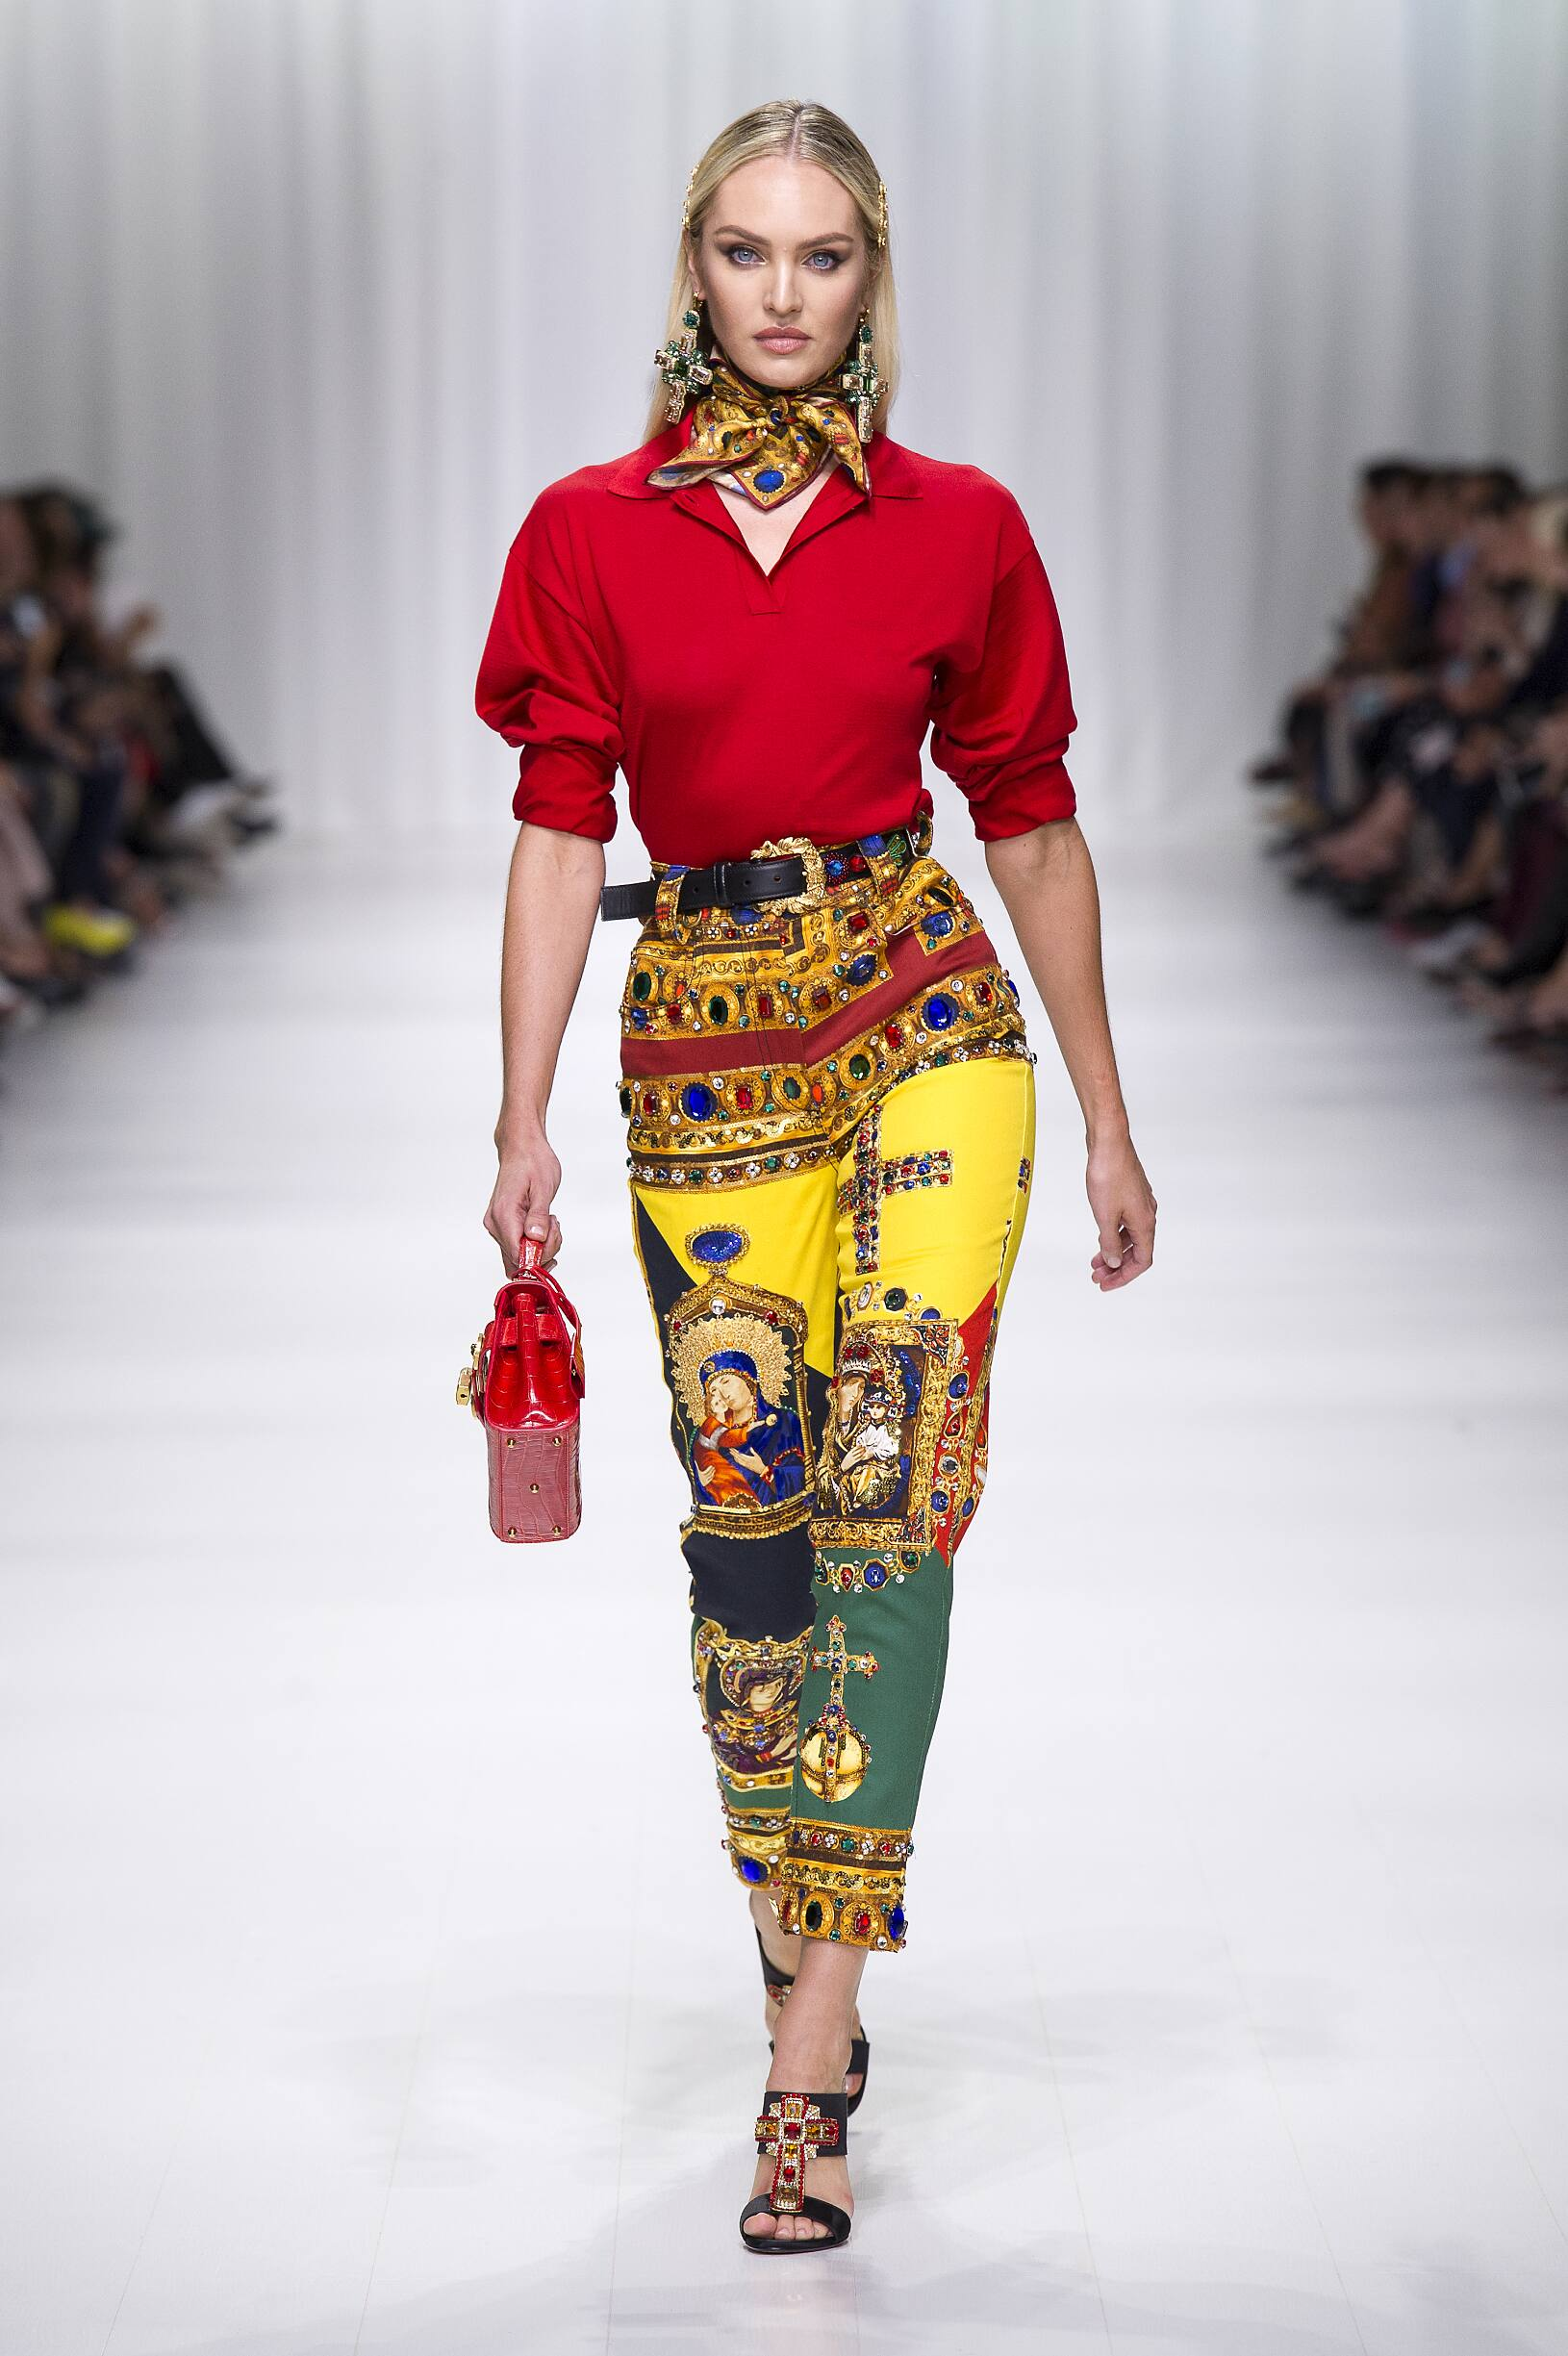 VERSACE SPRING SUMMER 2018 WOMEN'S COLLECTION